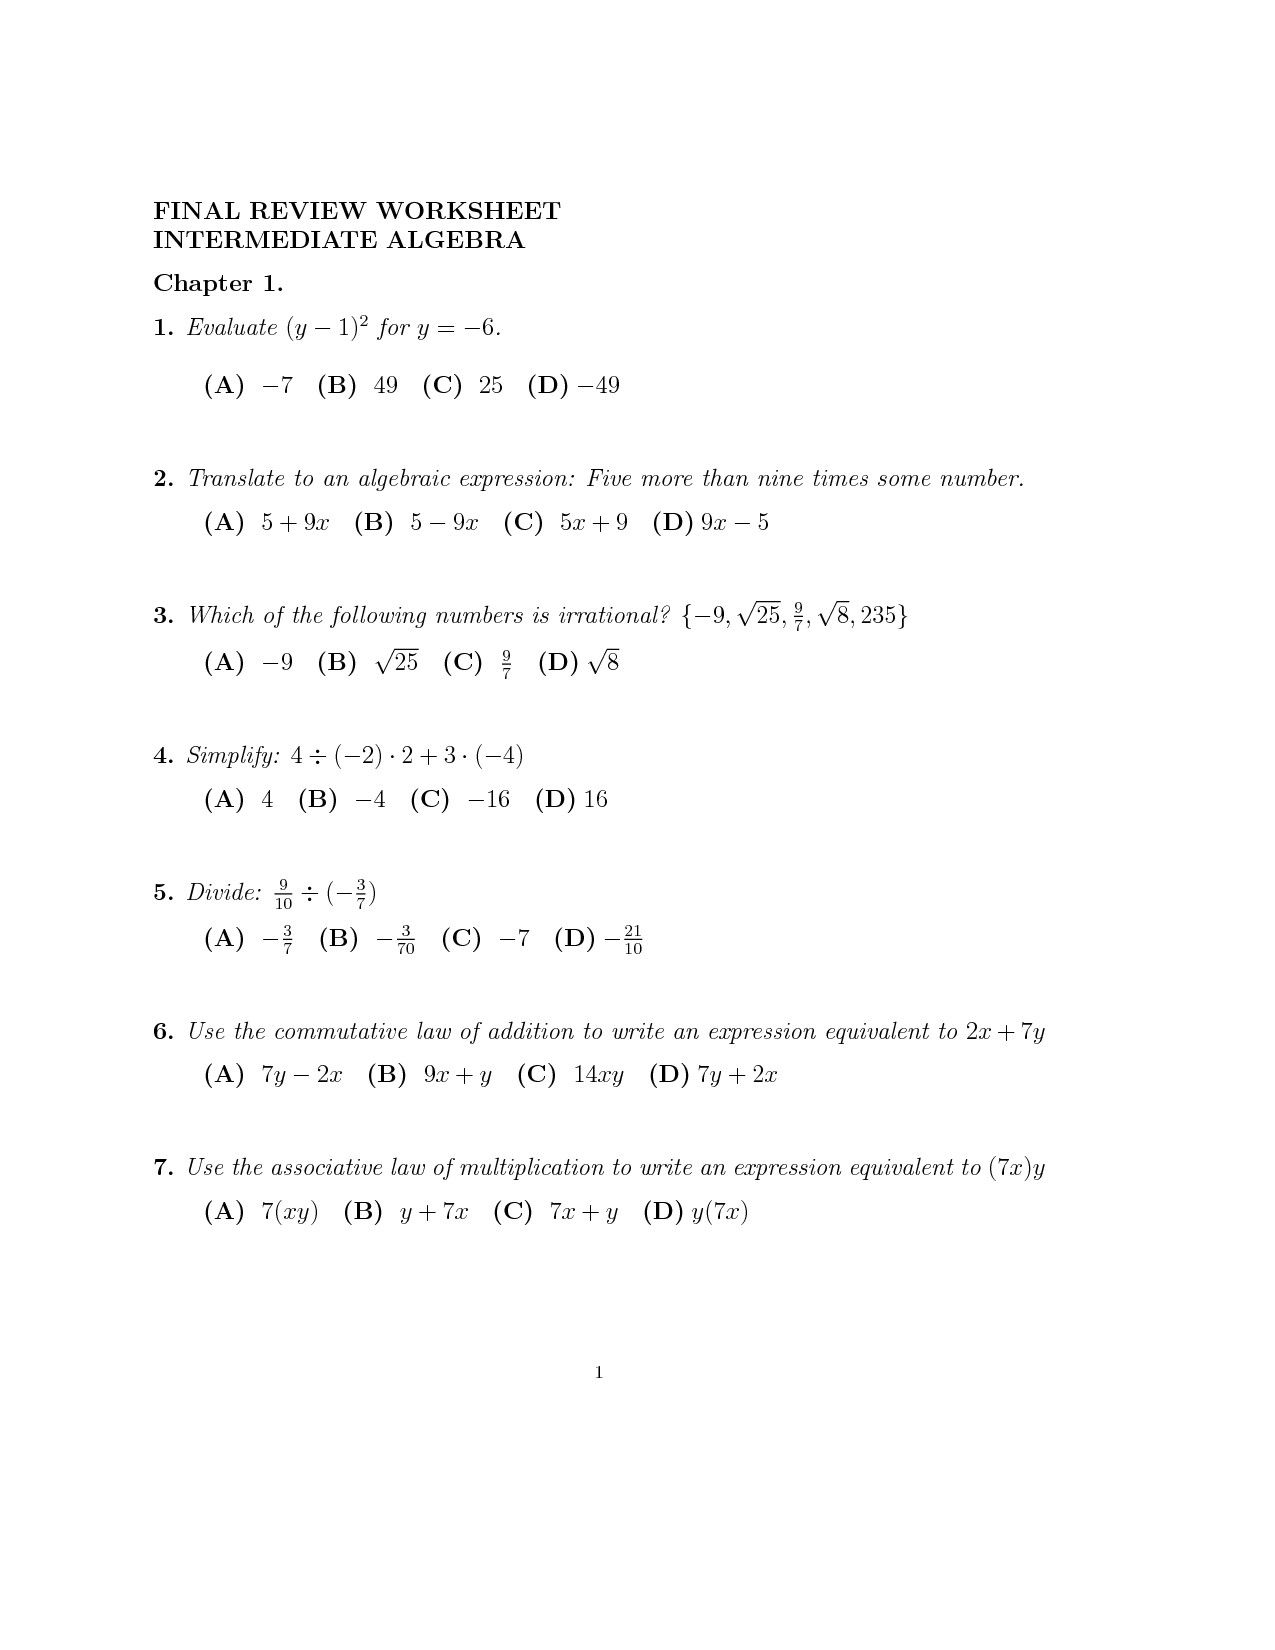 Subtracting Linear Expressions Worksheet   Printable Worksheets and  Activities for Teachers [ 1650 x 1275 Pixel ]